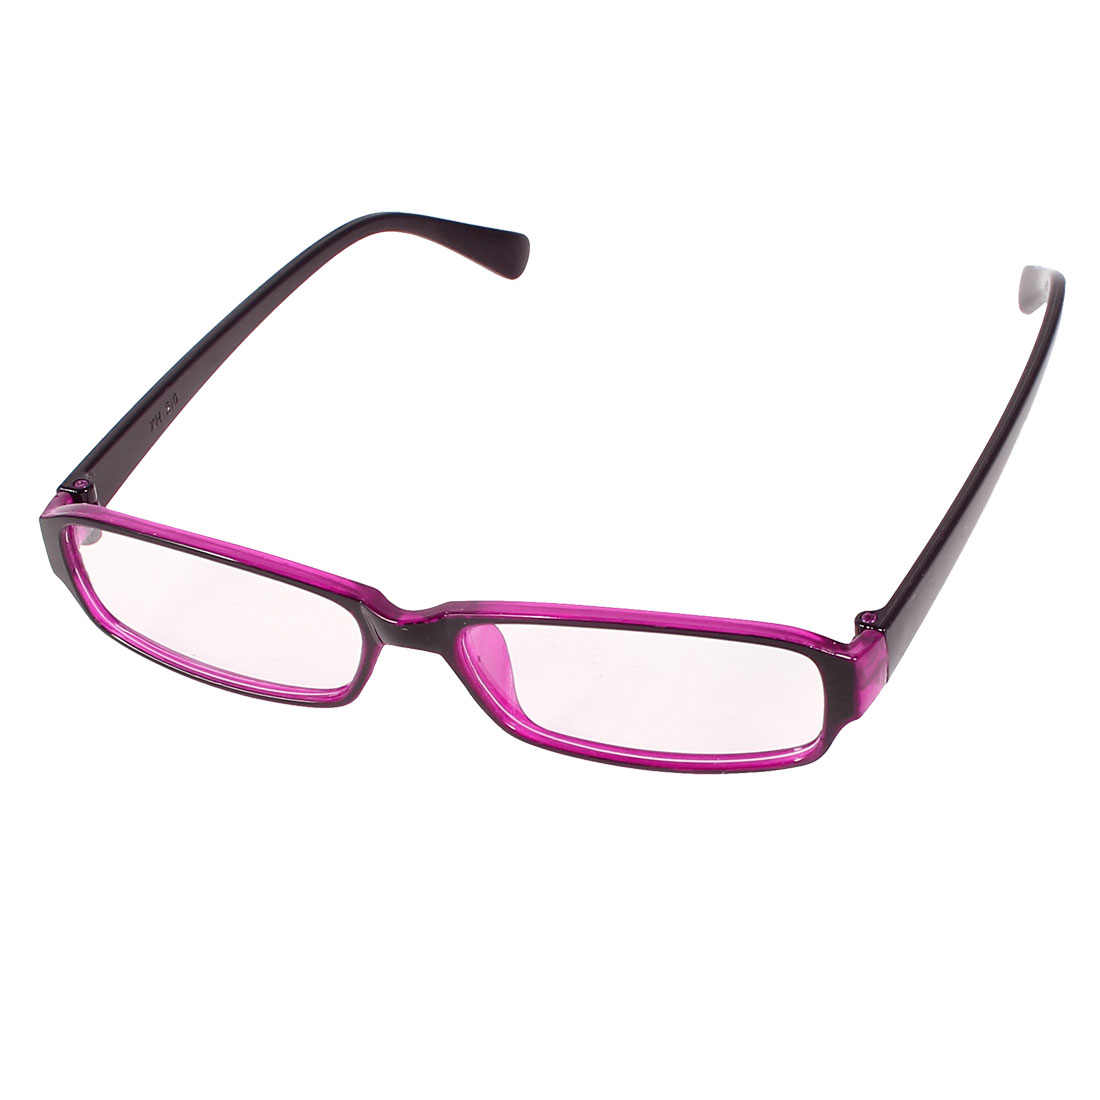 Women Fuchsia Black Plastic Arms Clear Lens Rimmed Plain Glasses